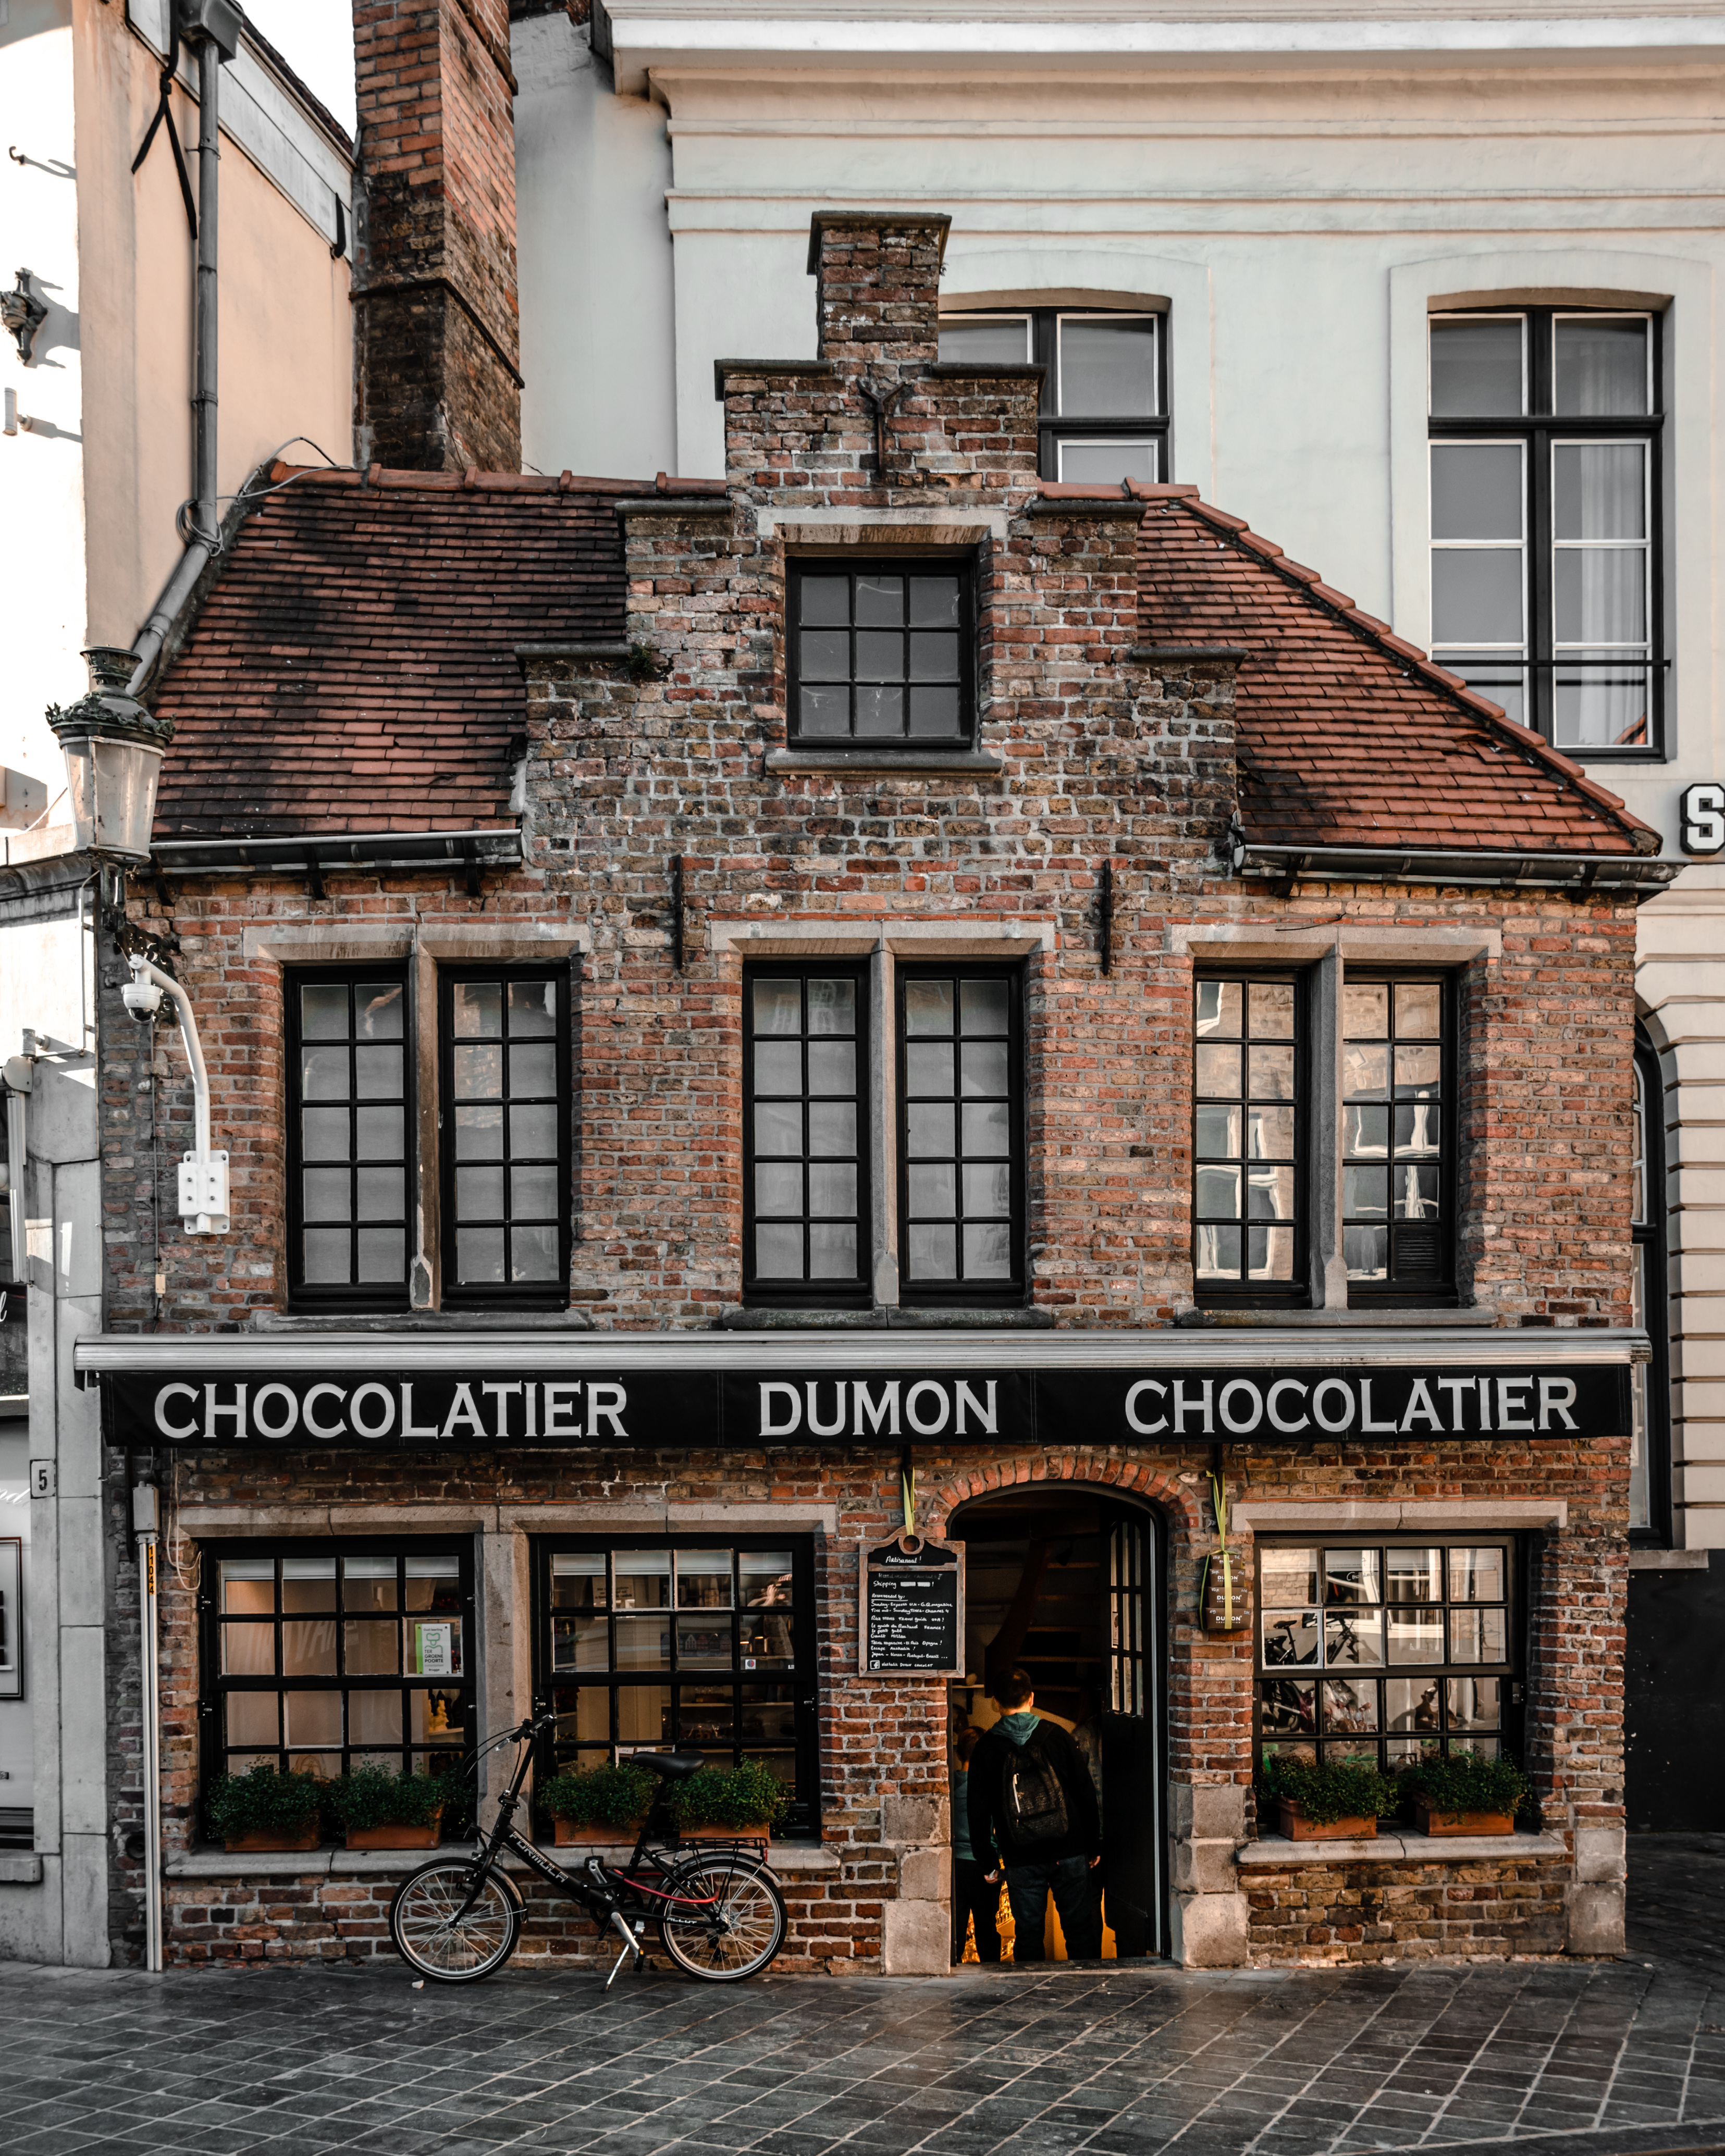 The Most Picturesque Locations in Bruges | Choclatier Dumon